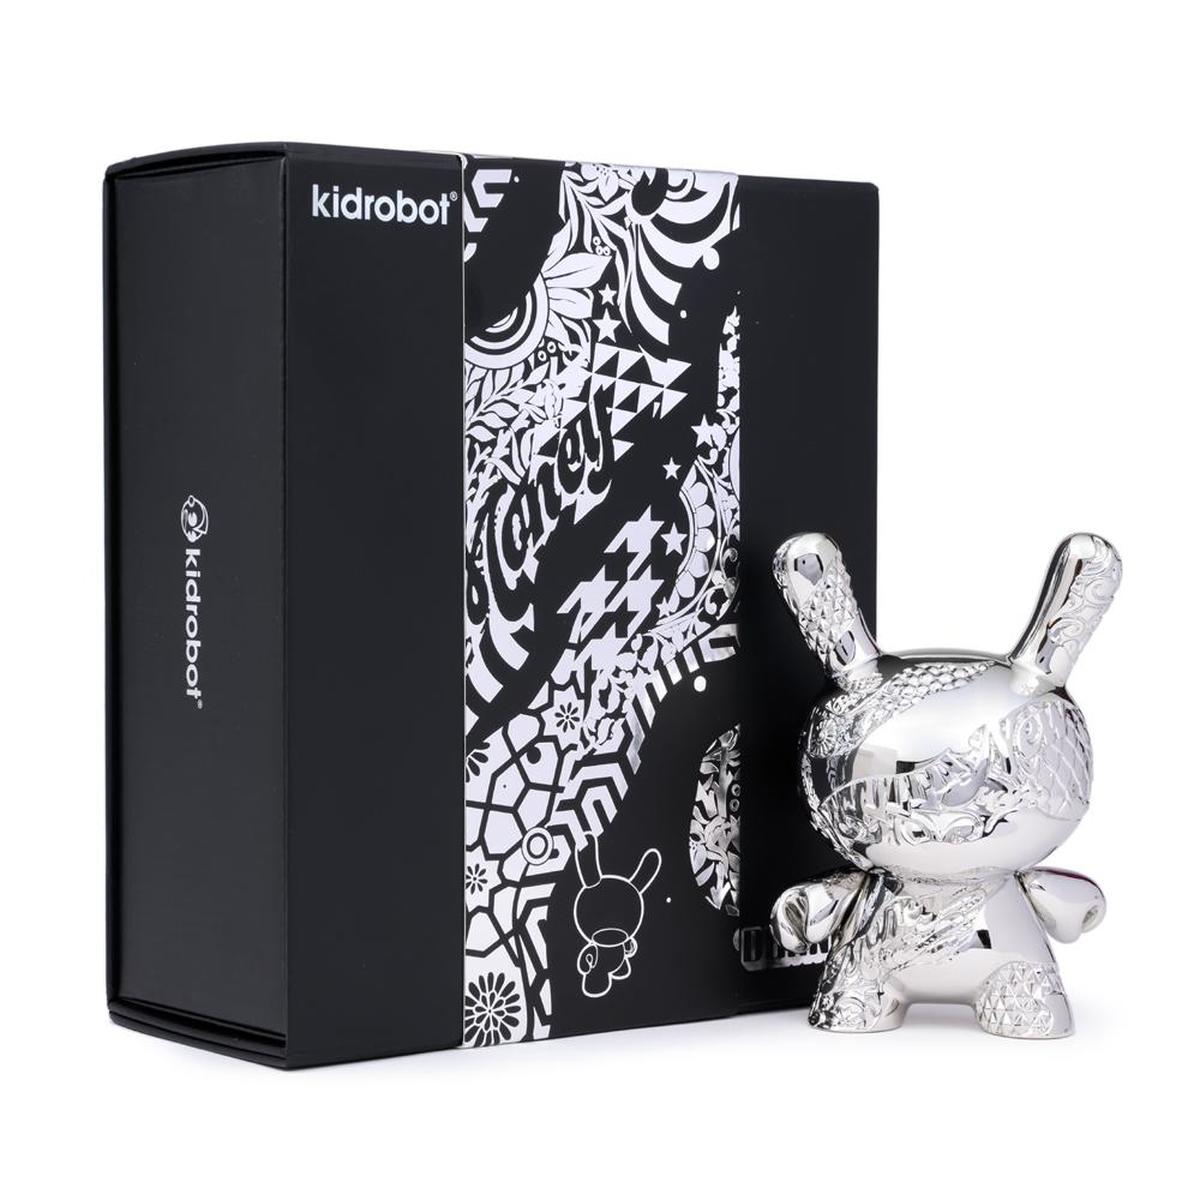 Kidrobot New Money Metal Dunny Tristan Eaton 5 inch Art Toy